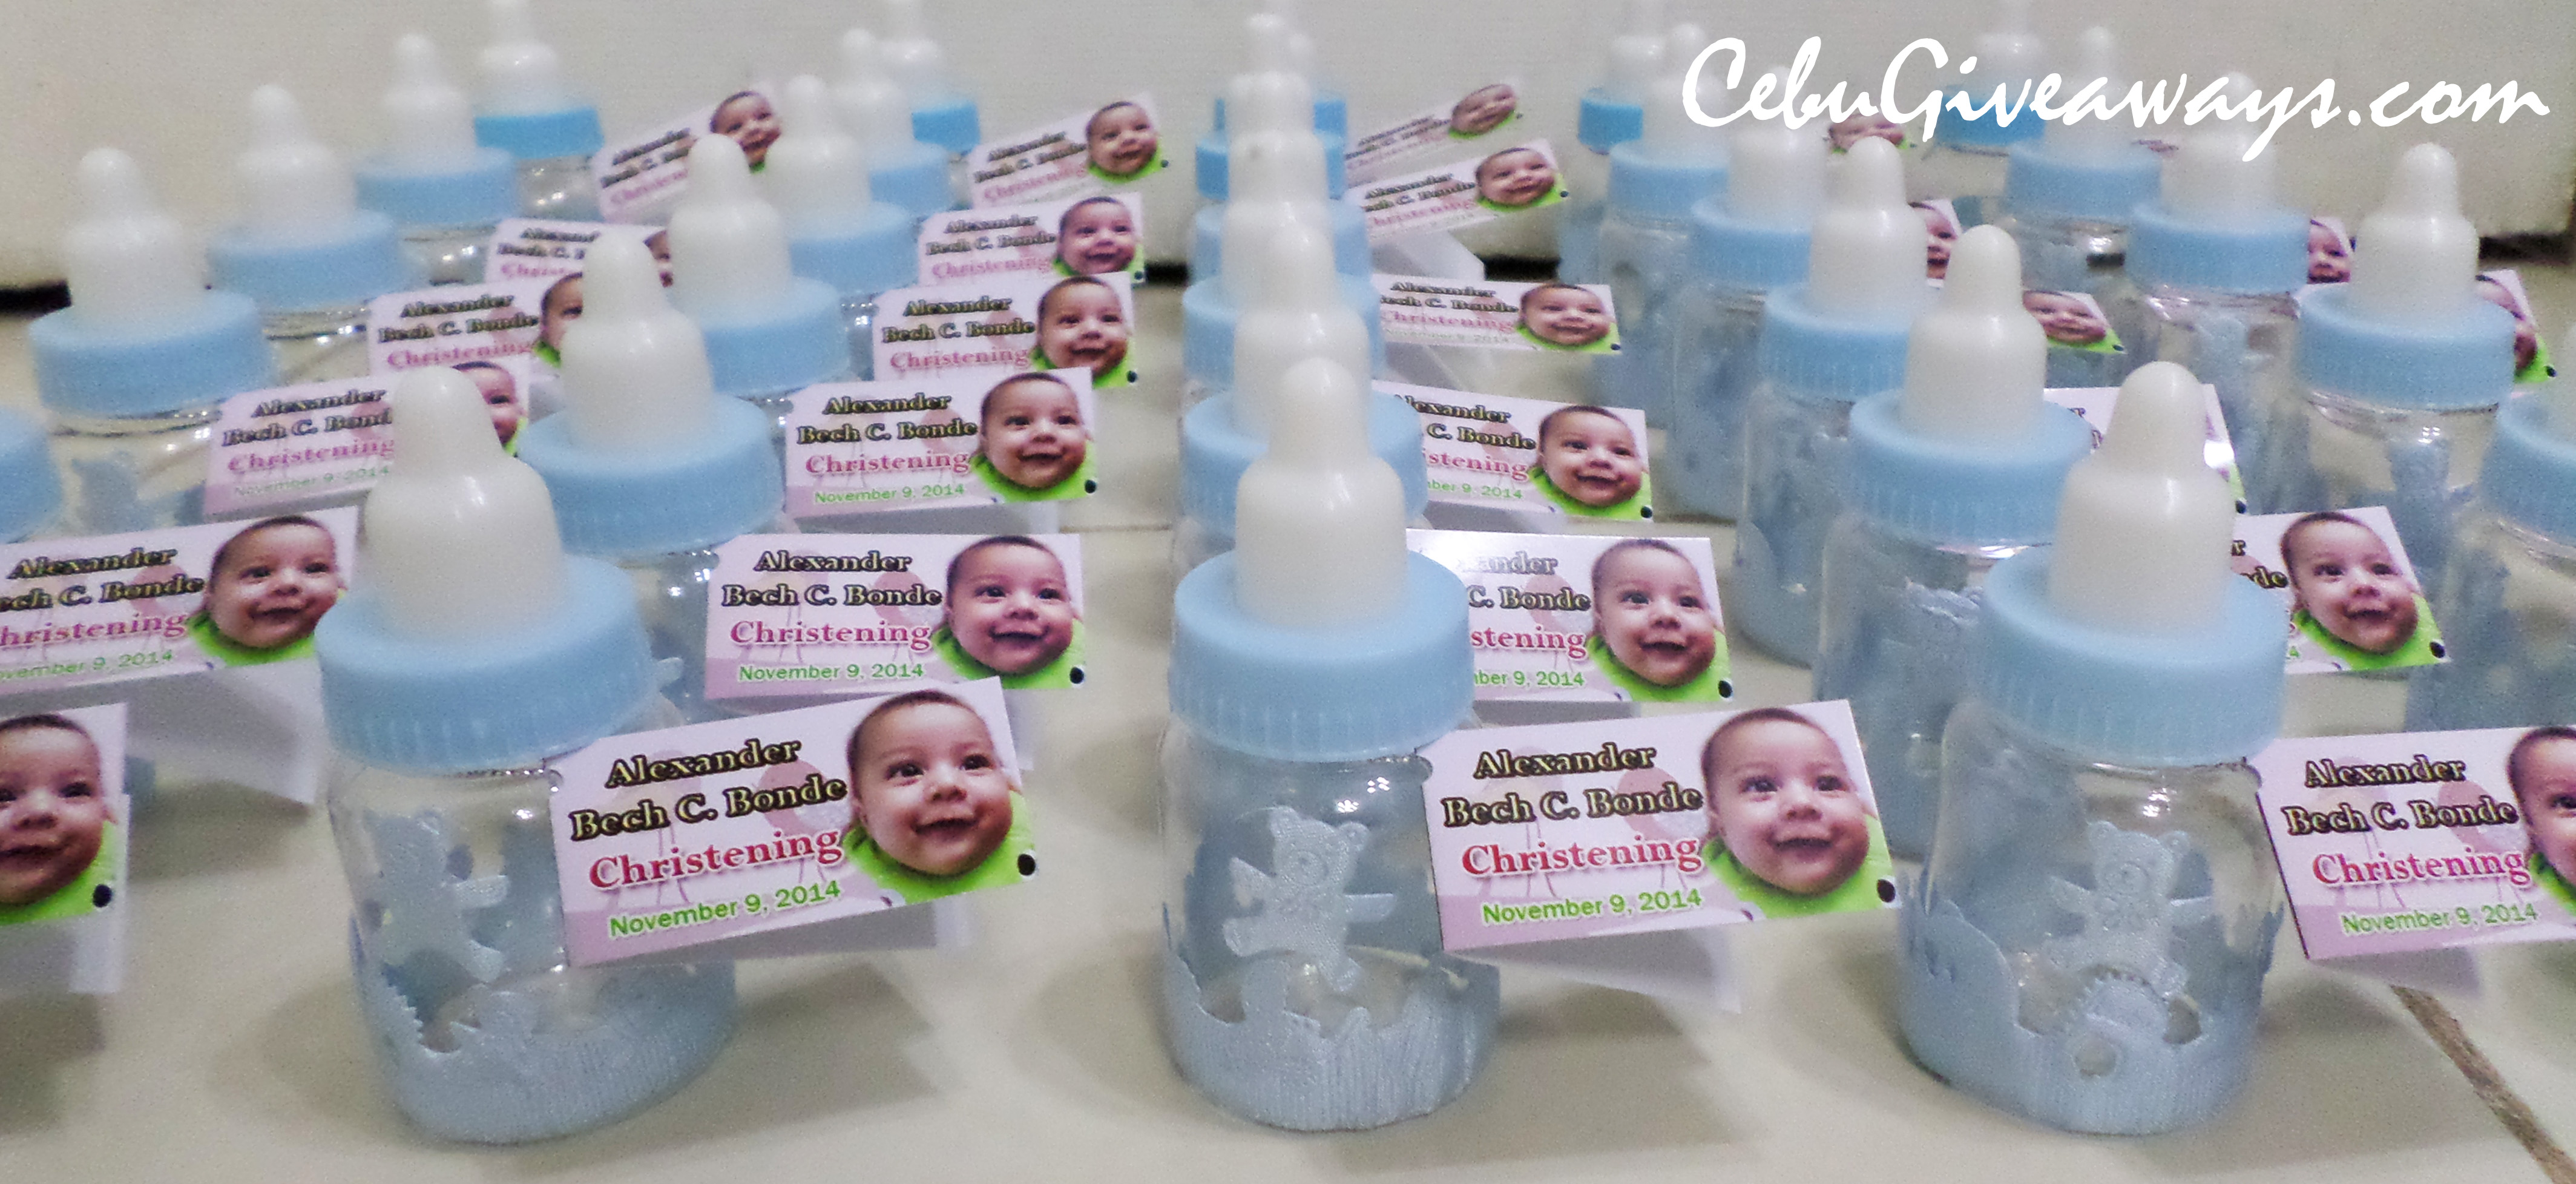 Christening Giveaways Cebu Giveaways Personalized Items